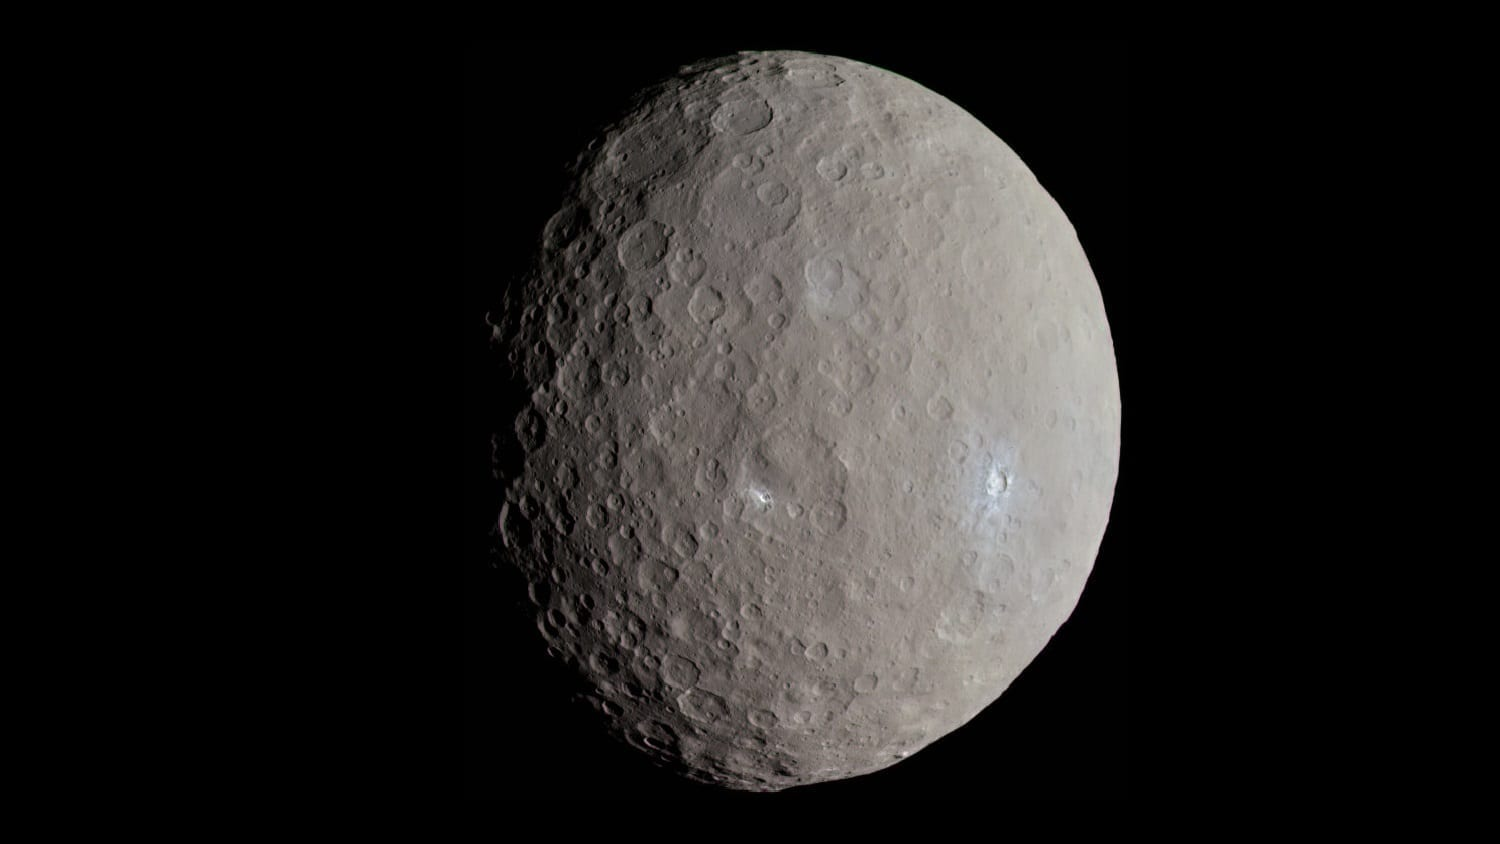 Ceres from the Dawn spacecraft